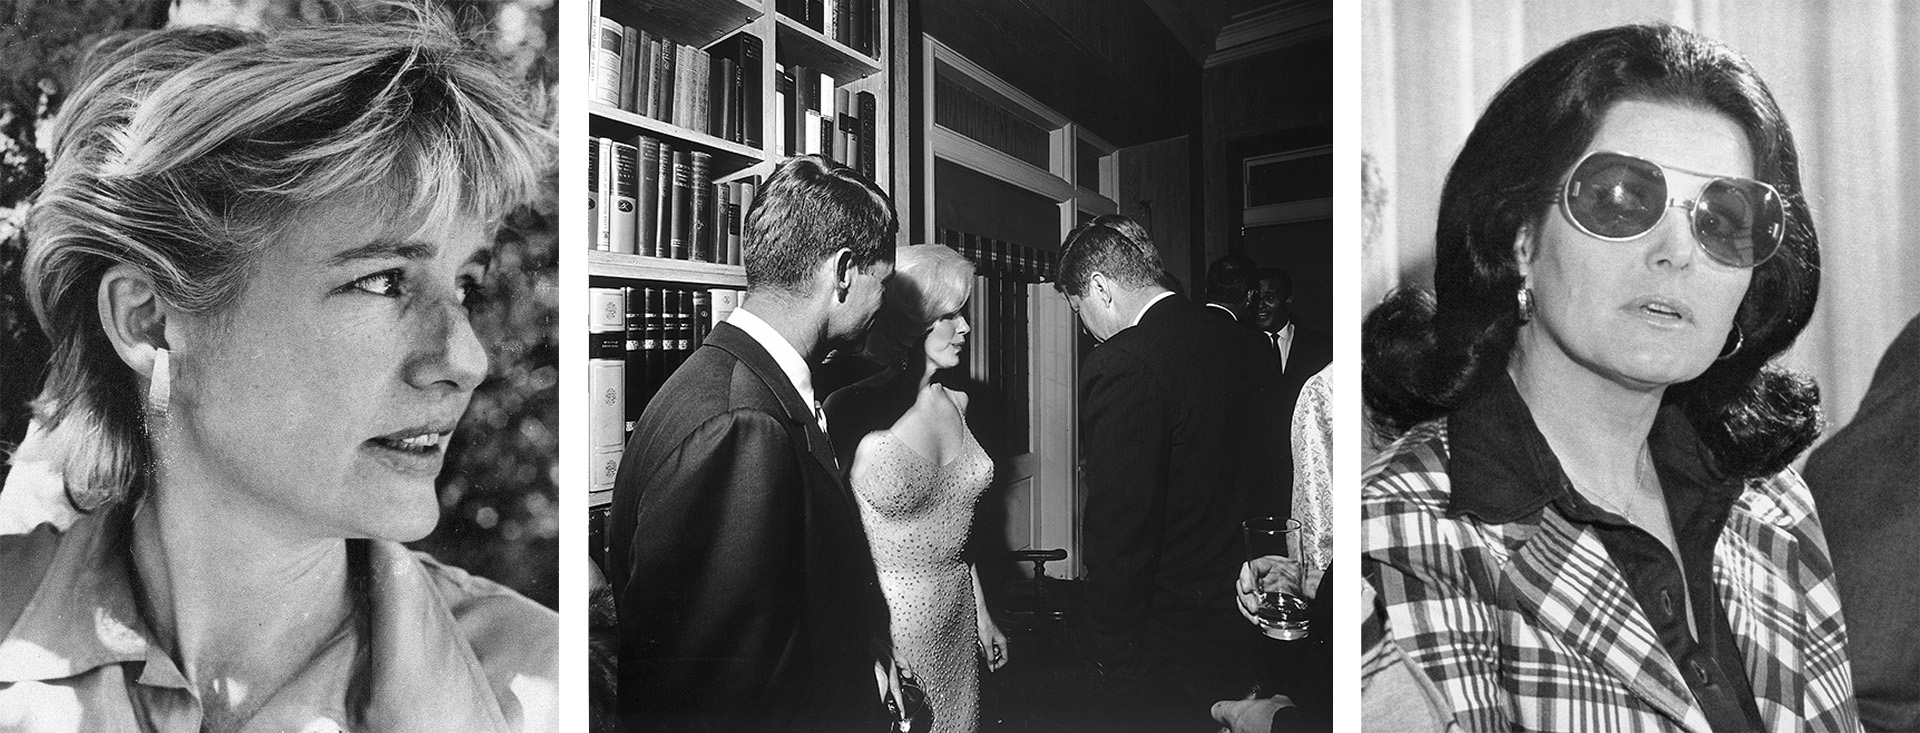 (L-R) Mary Pinchot Meyer, Robert and John F. Kennedy seen with Marilyn Monroe after she famously sang 'Happy Birthday' to JFK, and Judith Campbell Exner. (Credit: AP Photo & Cecil Stoughton/The LIFE Images Collection/Getty Images & Bettmann Archives/Getty Images)